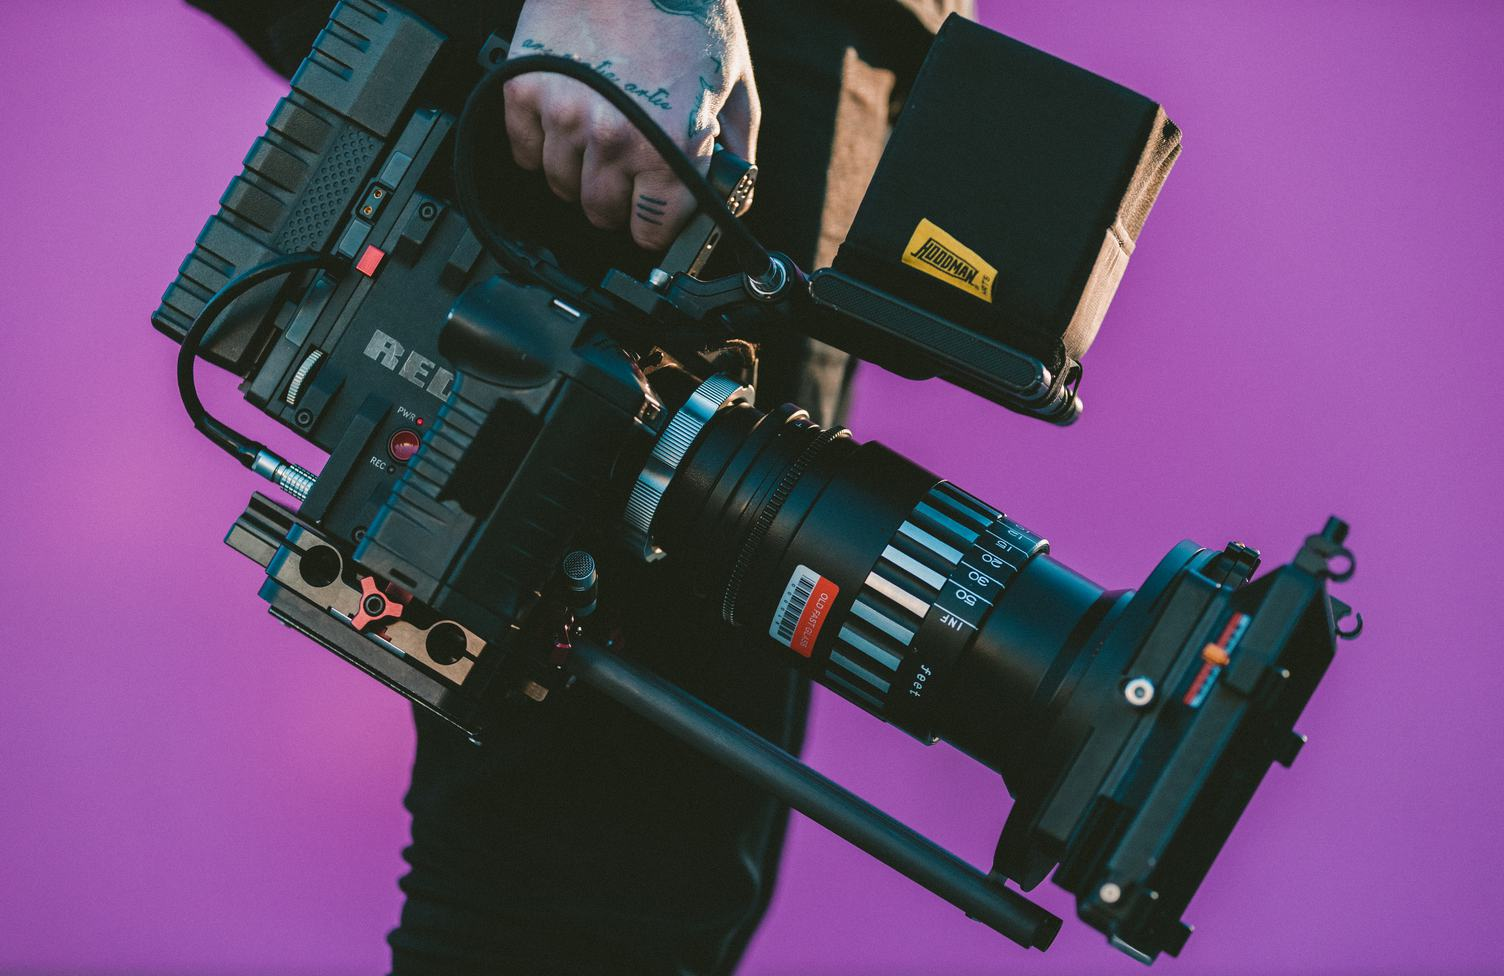 Video Camera Operator Carrying His Professional Equipment